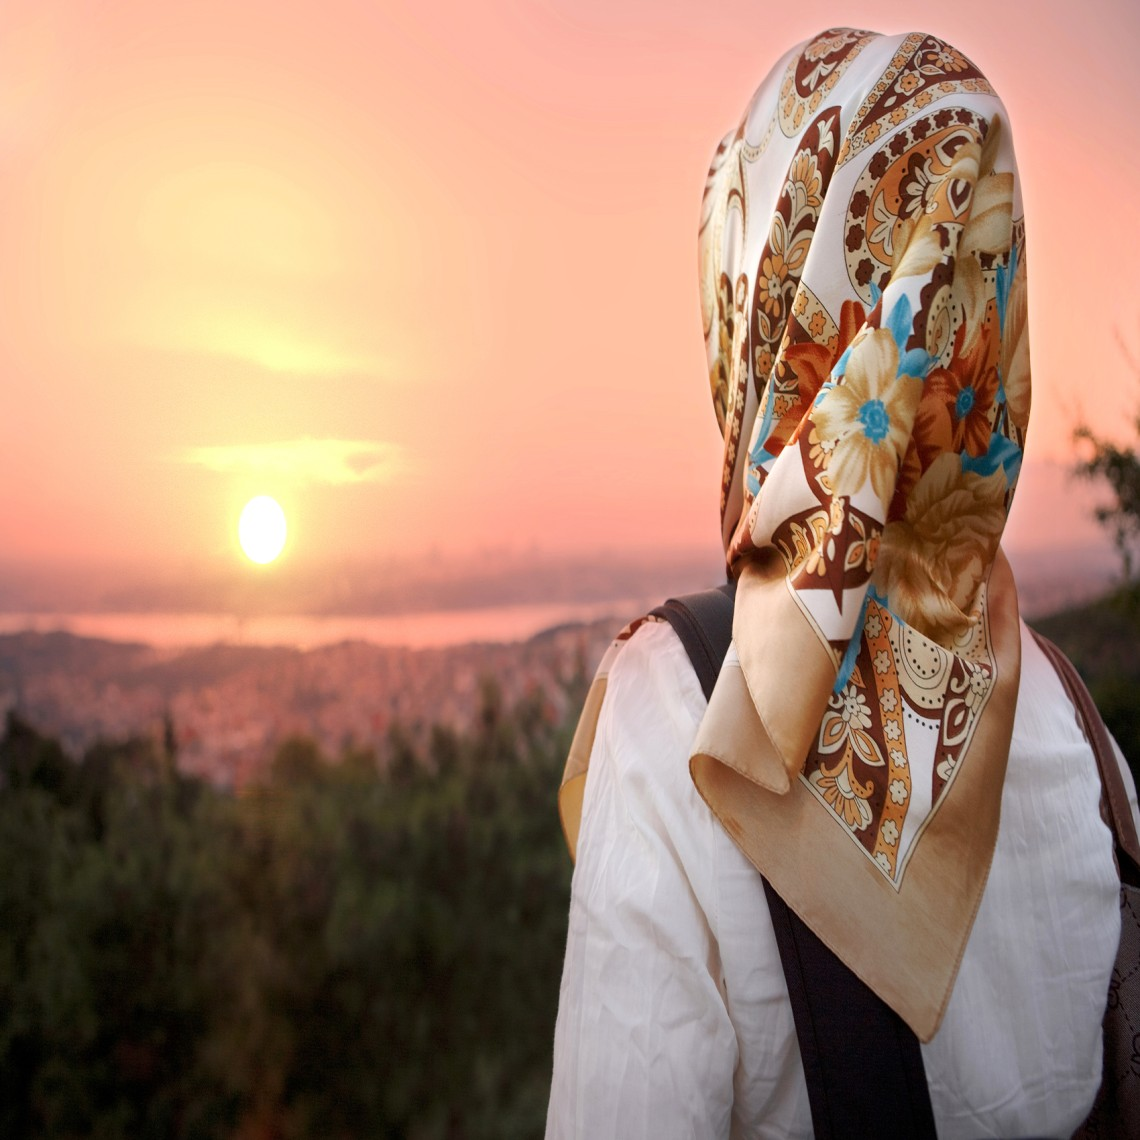 What Is the Status of Women in Islam?